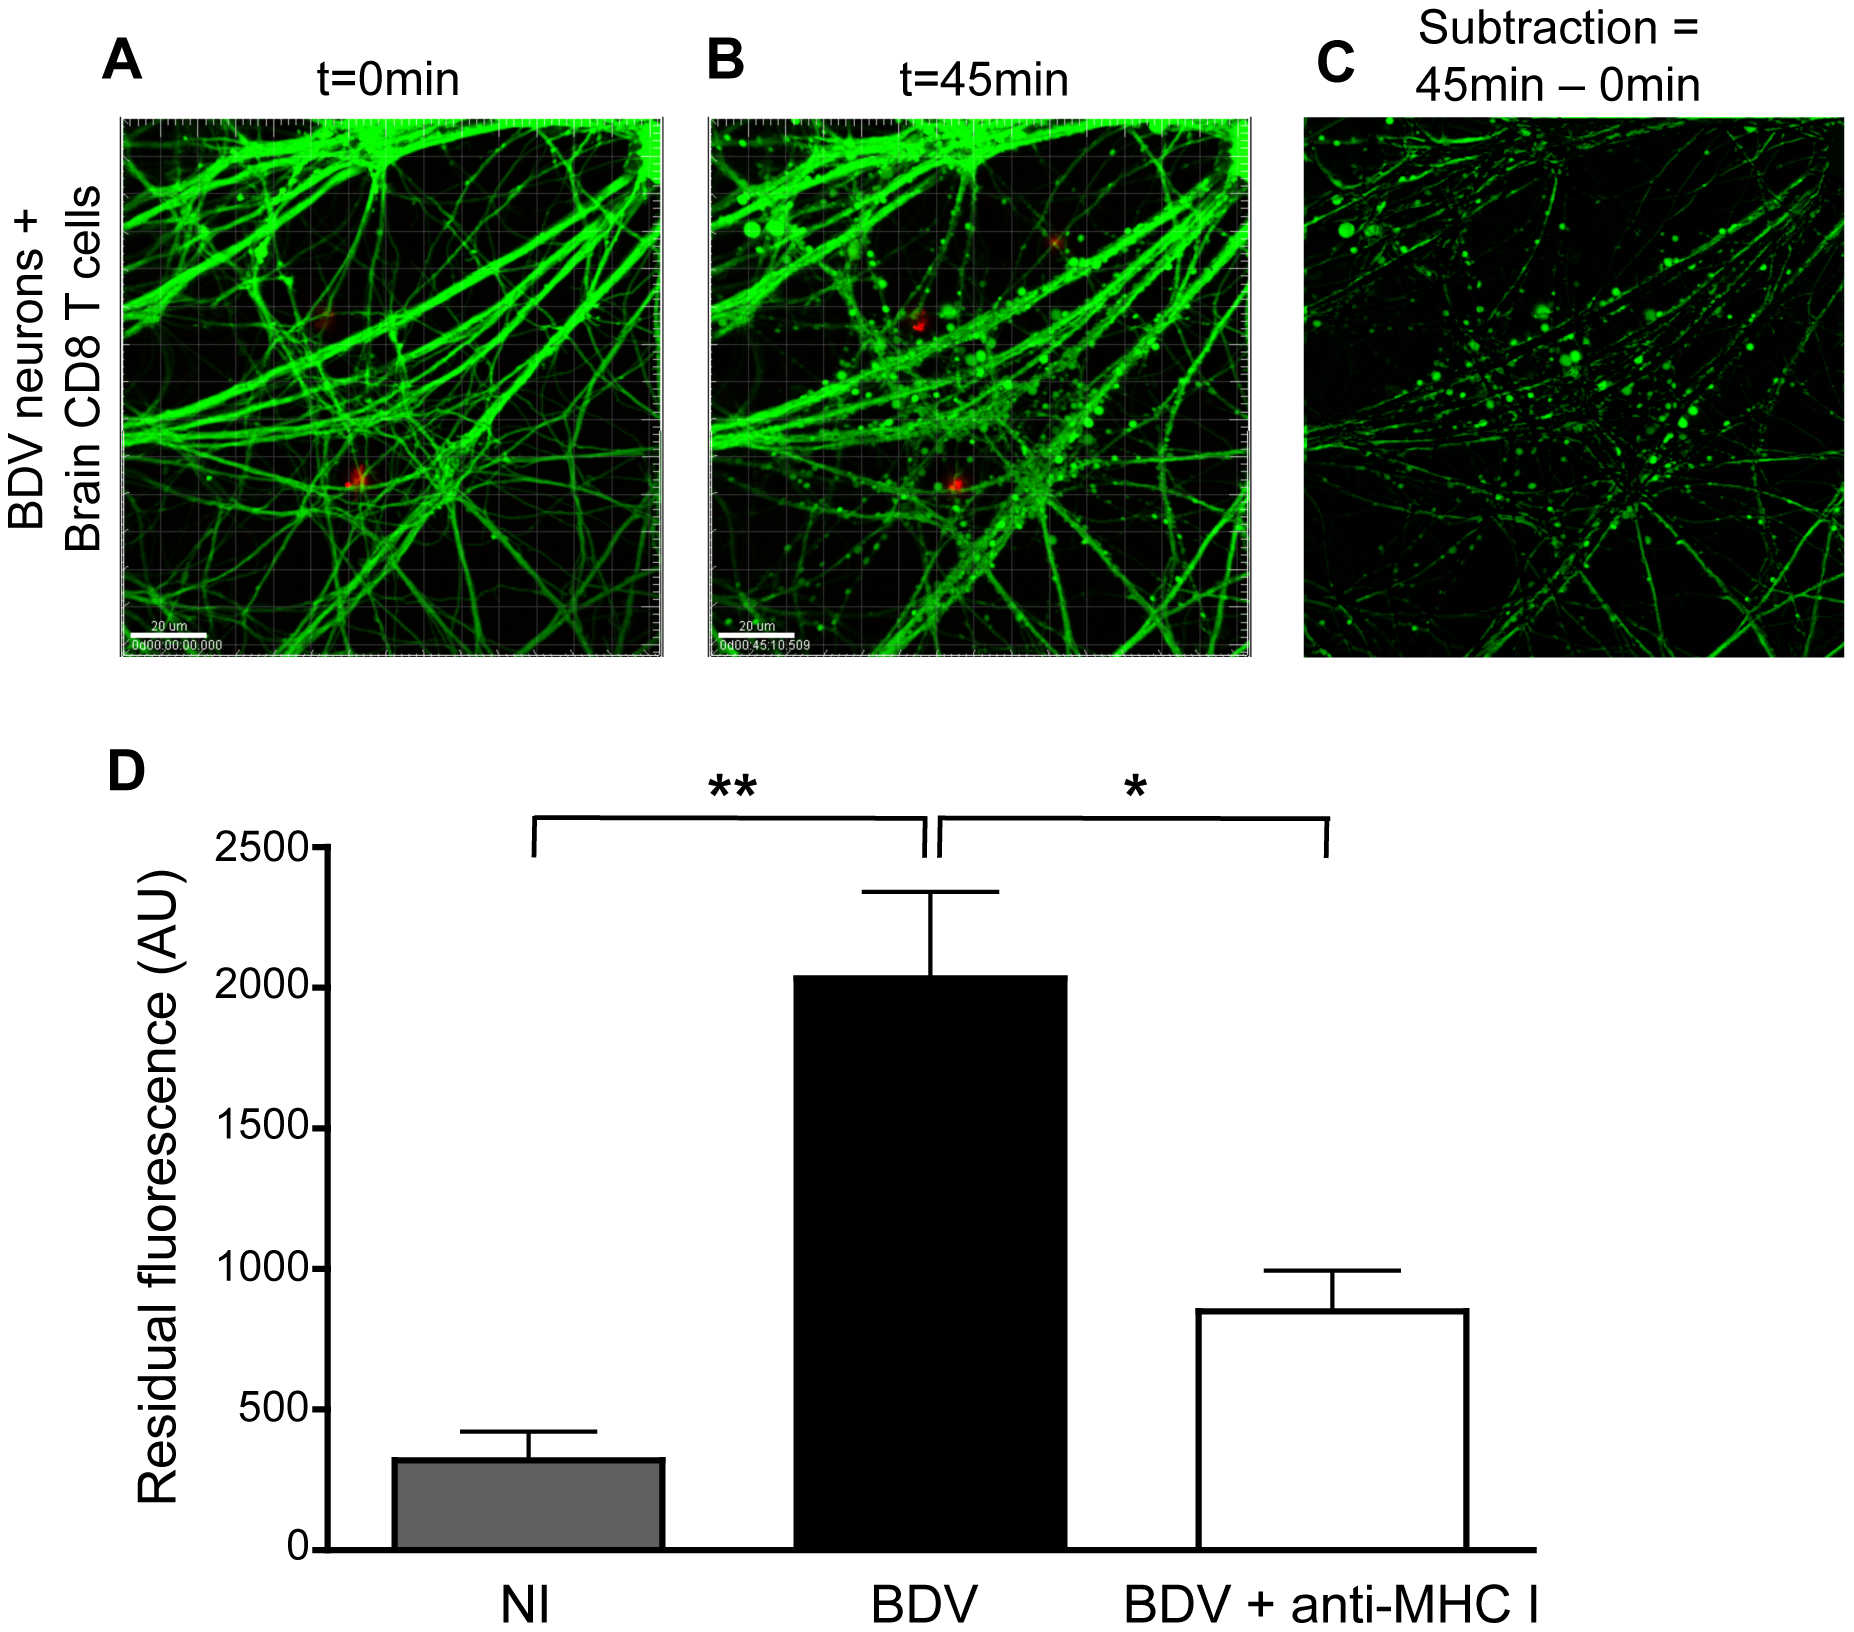 Interaction with brain-purified CD8 T cells induces early morphological changes of BDV-infected neurons.